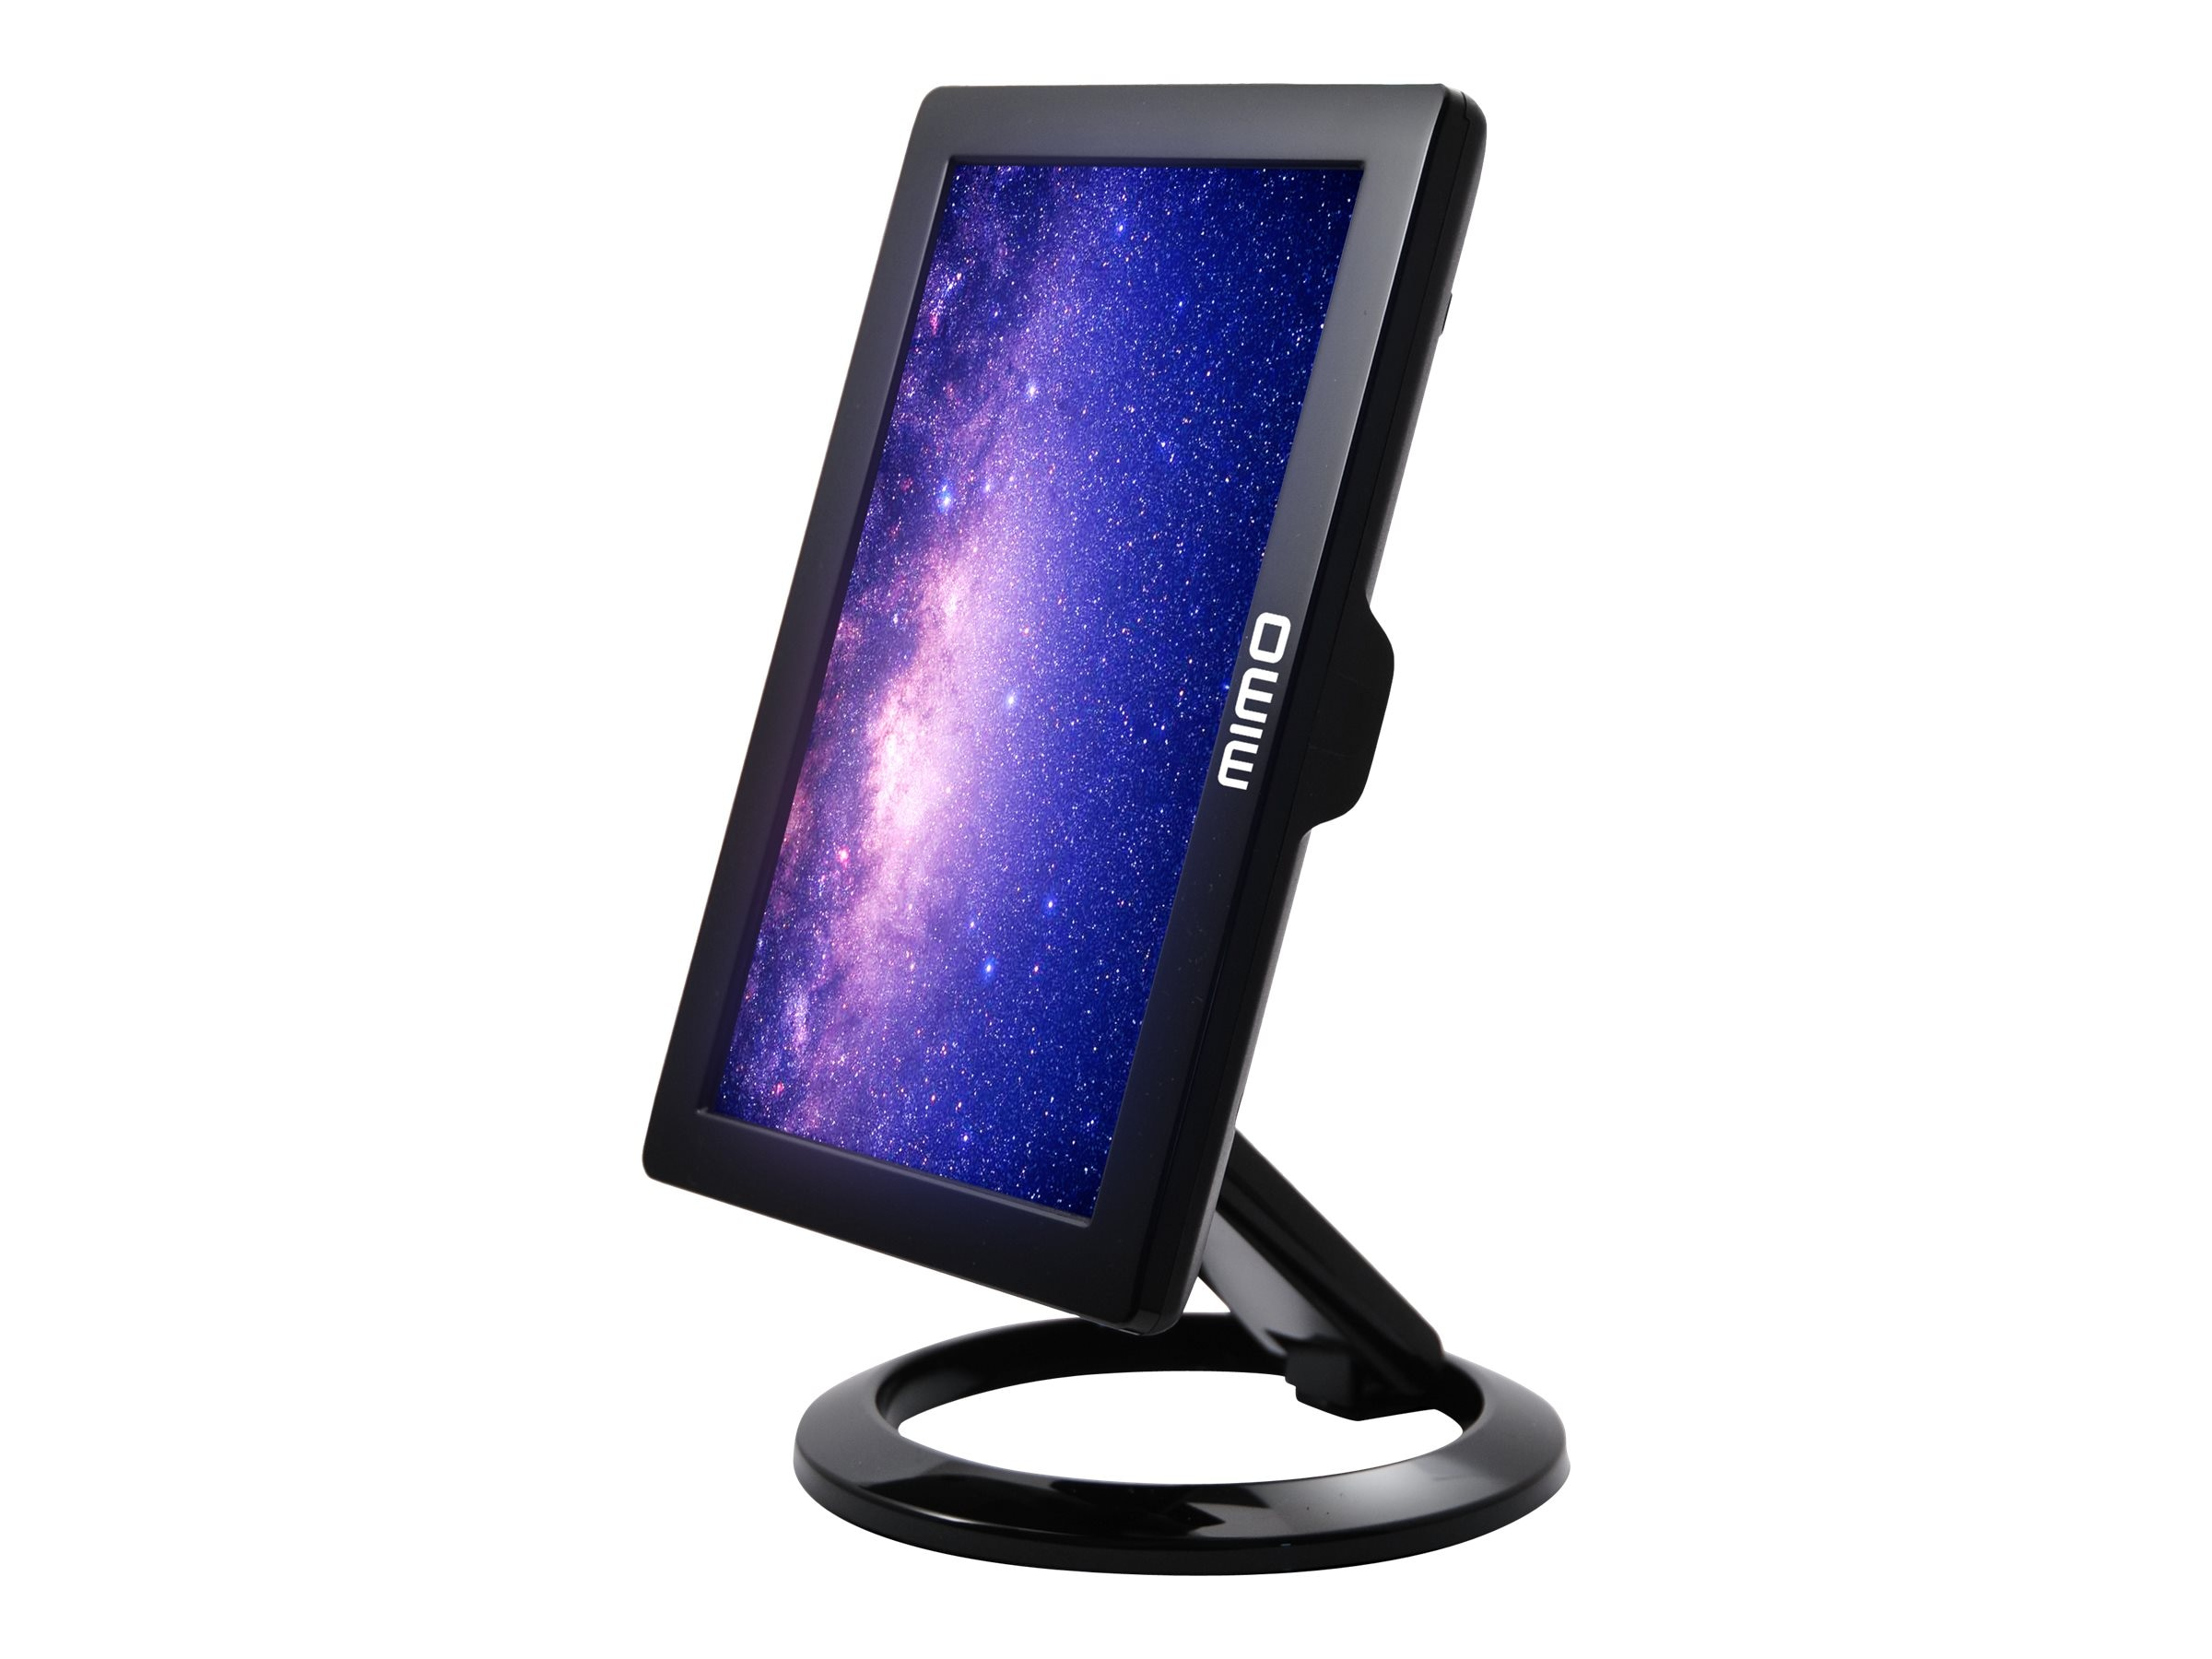 Mimo 7 Touch 2 Portable Resistive Touch Screen Monitor, Black, TOUCH 2, 17695161, Monitors - LCD